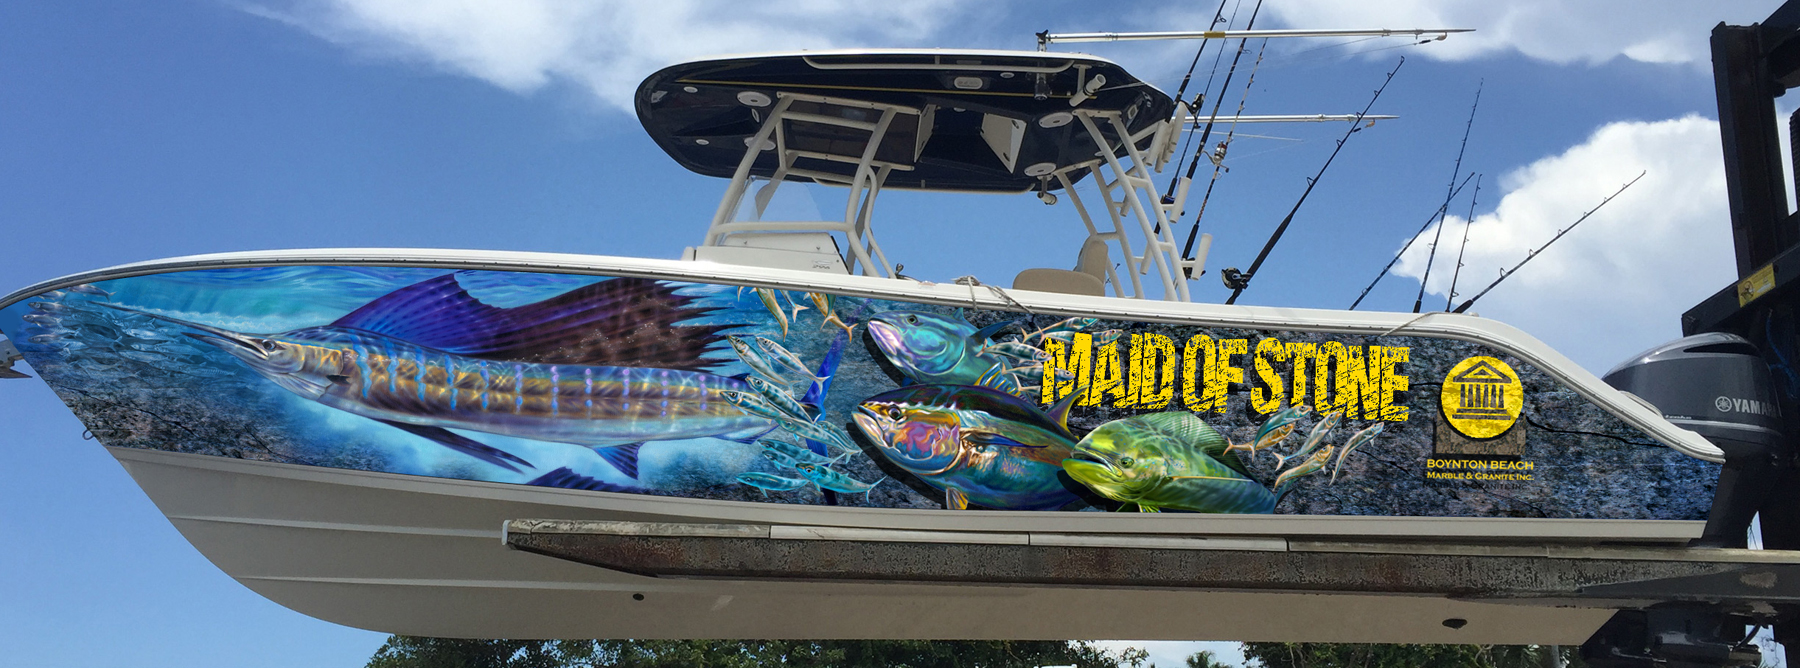 jason-mathias-boat-wrap-art-and-design.jpg